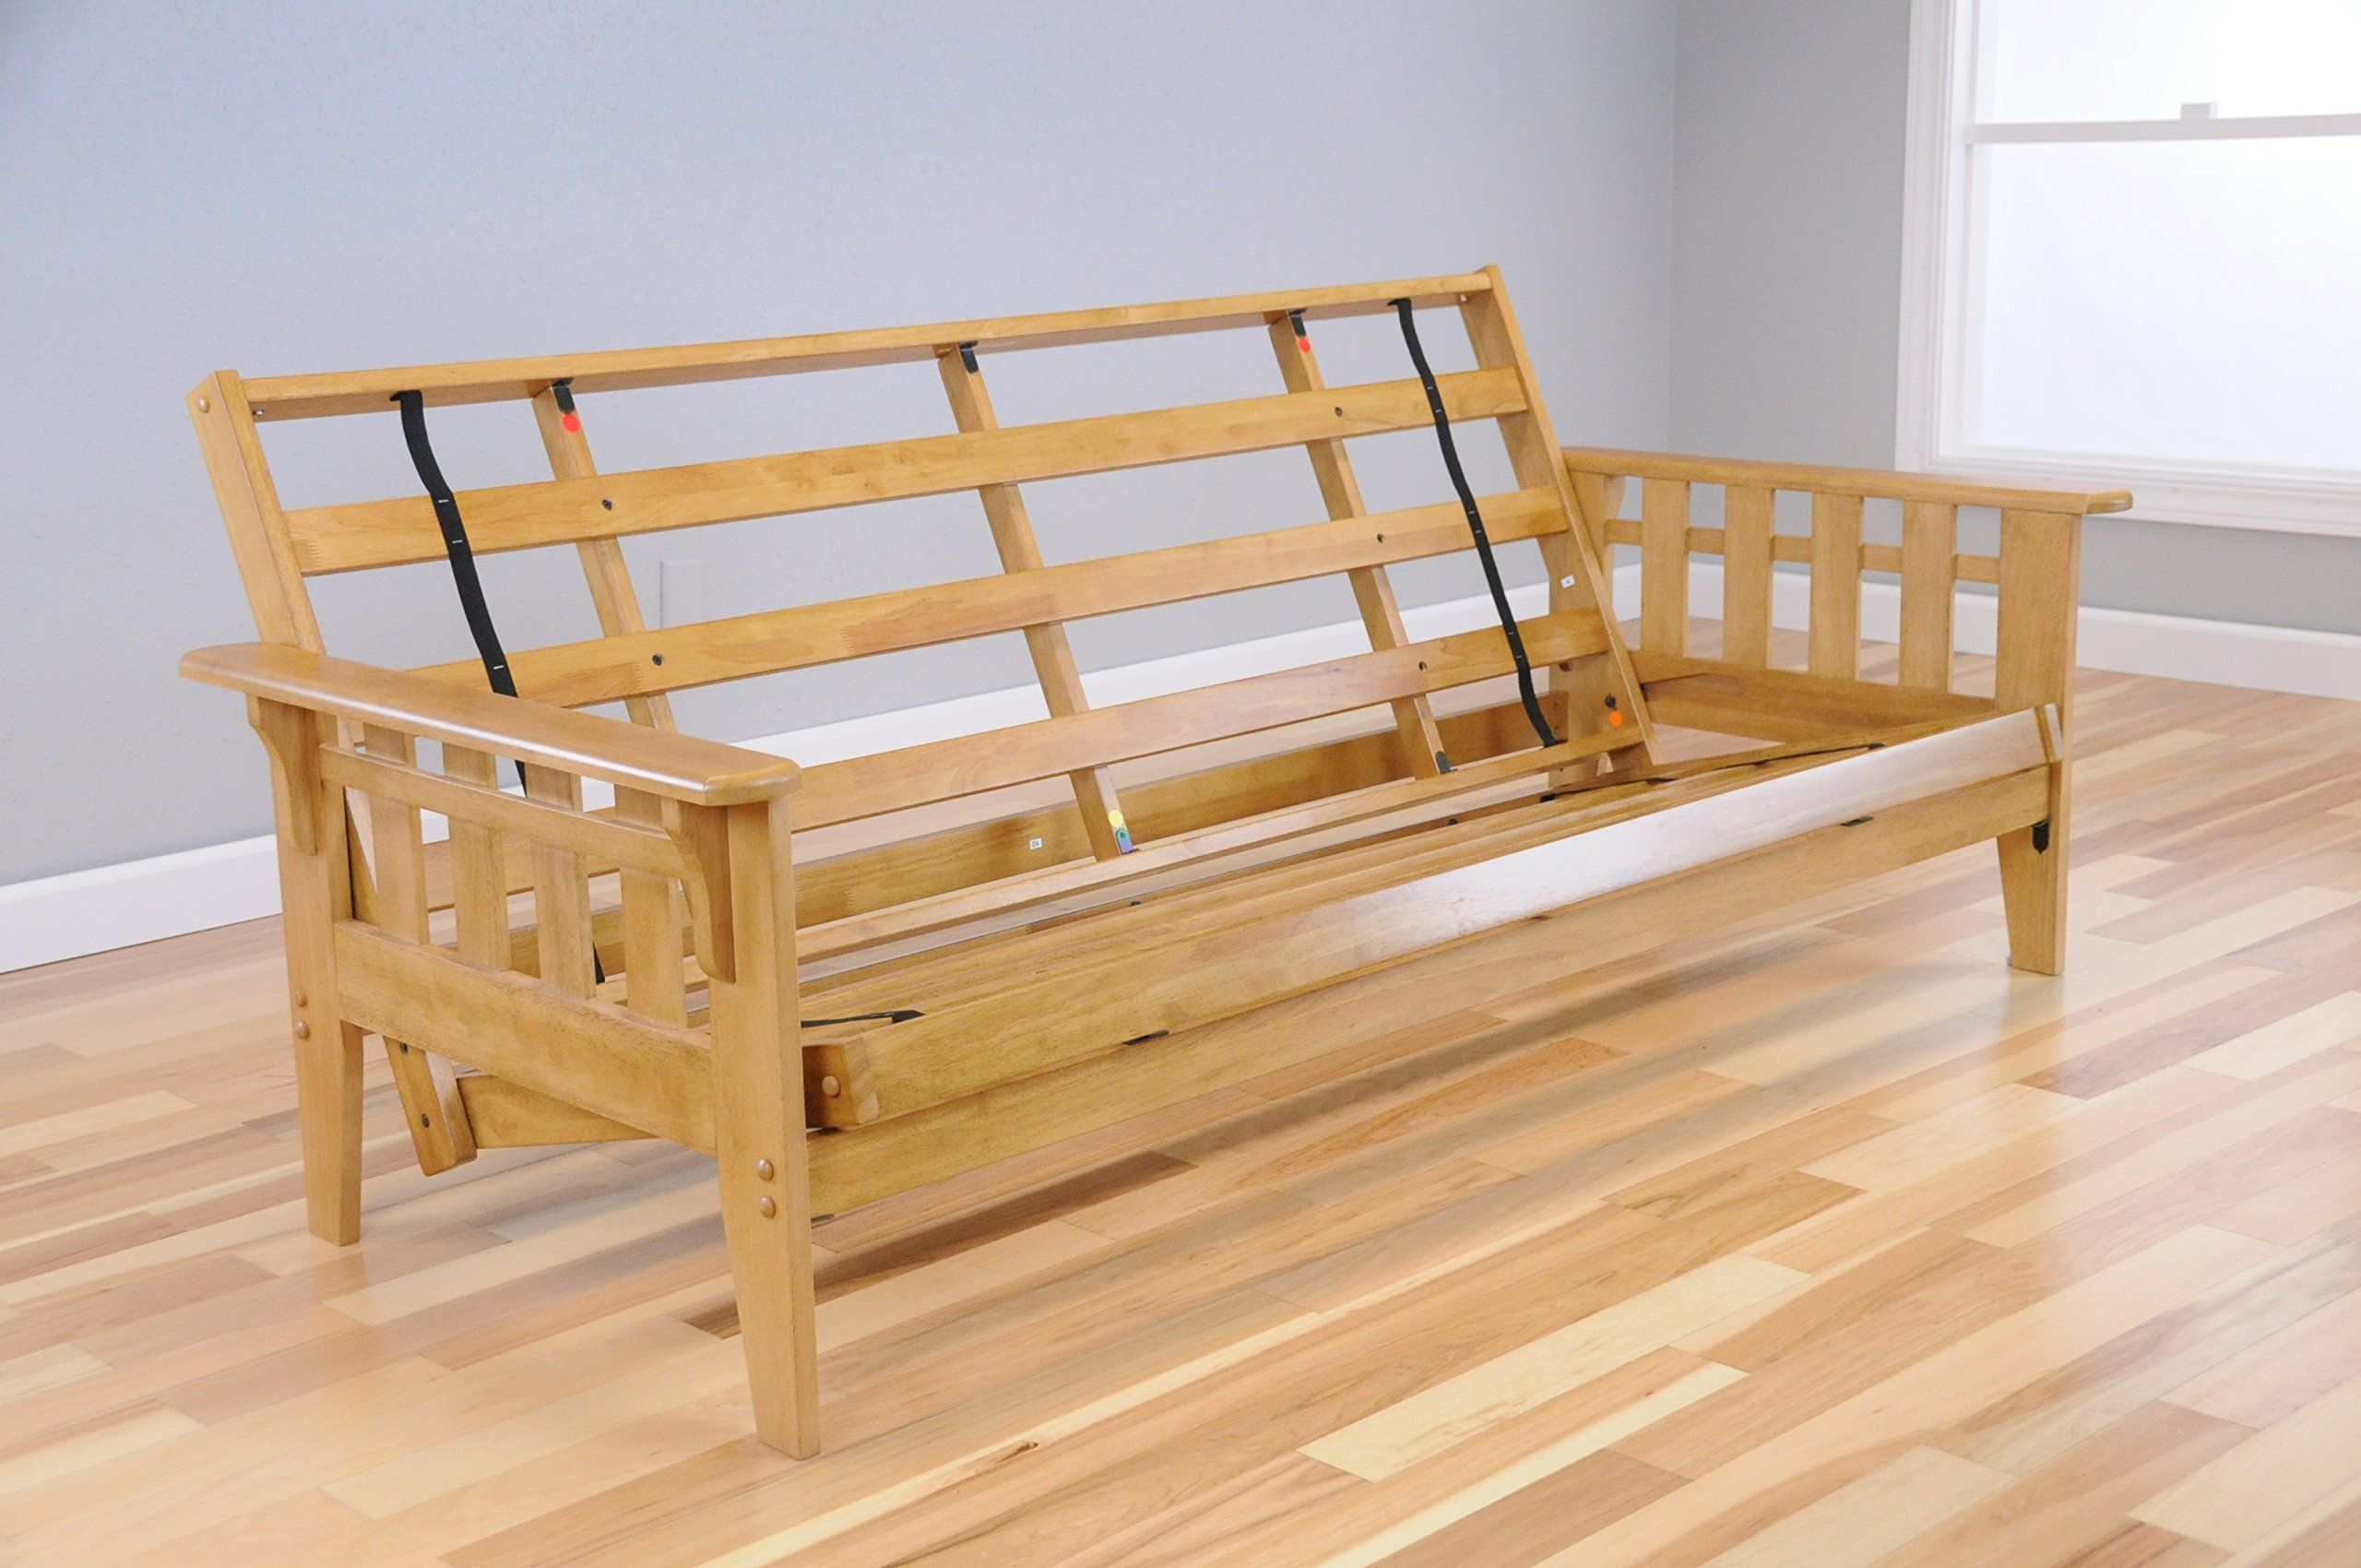 Wooden Futon Mission Style Maple Ernut Light Wood With Full Size Mattress And Optional Drawers For Storage Read More Reviews Of The Product By